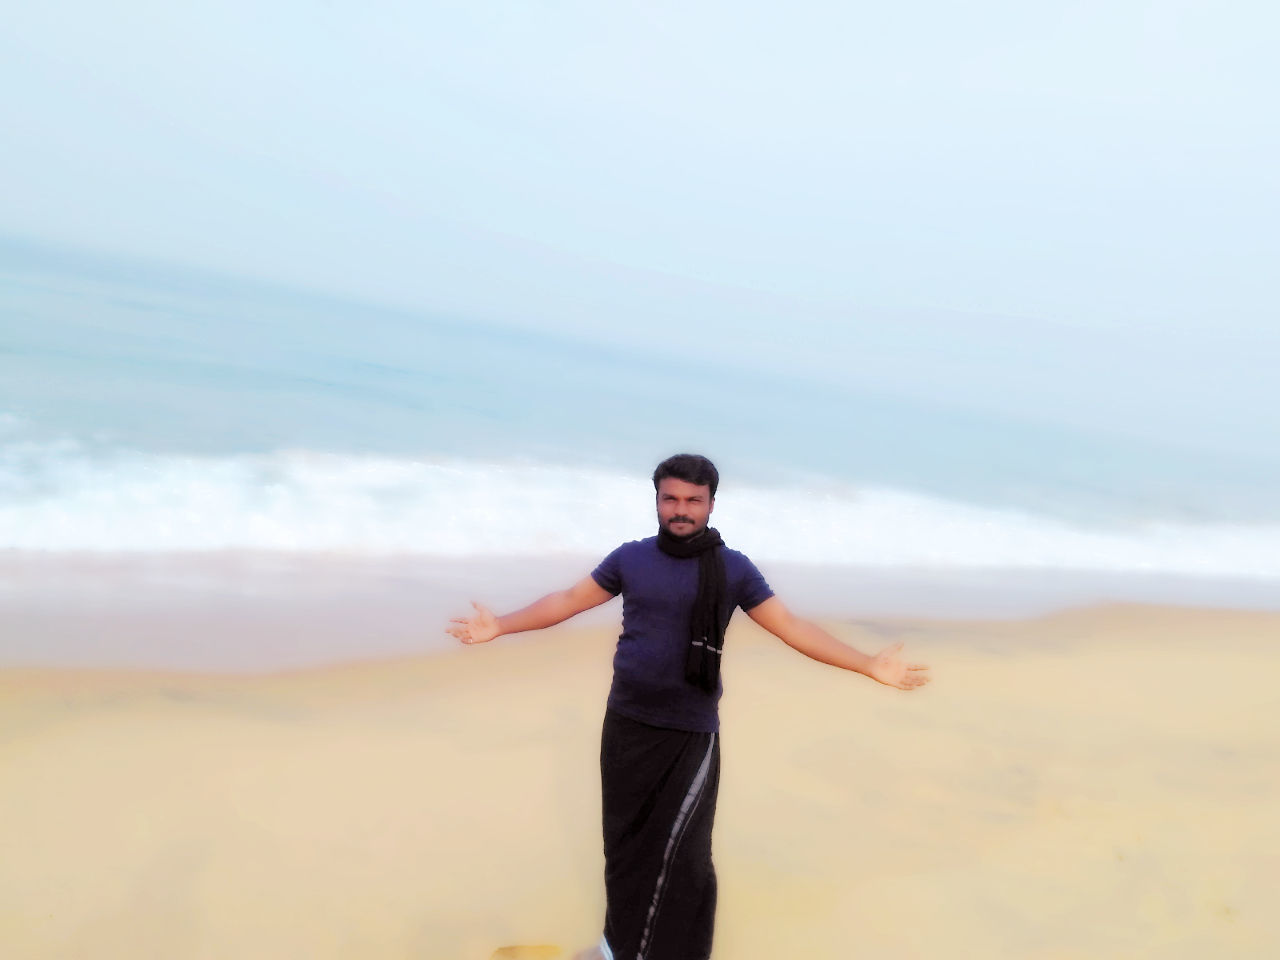 real people, sea, nature, one person, leisure activity, standing, sky, lifestyles, beach, front view, beauty in nature, outdoors, scenics, arms outstretched, sand, young men, horizon over water, looking at camera, day, water, focus on foreground, young adult, men, portrait, energetic